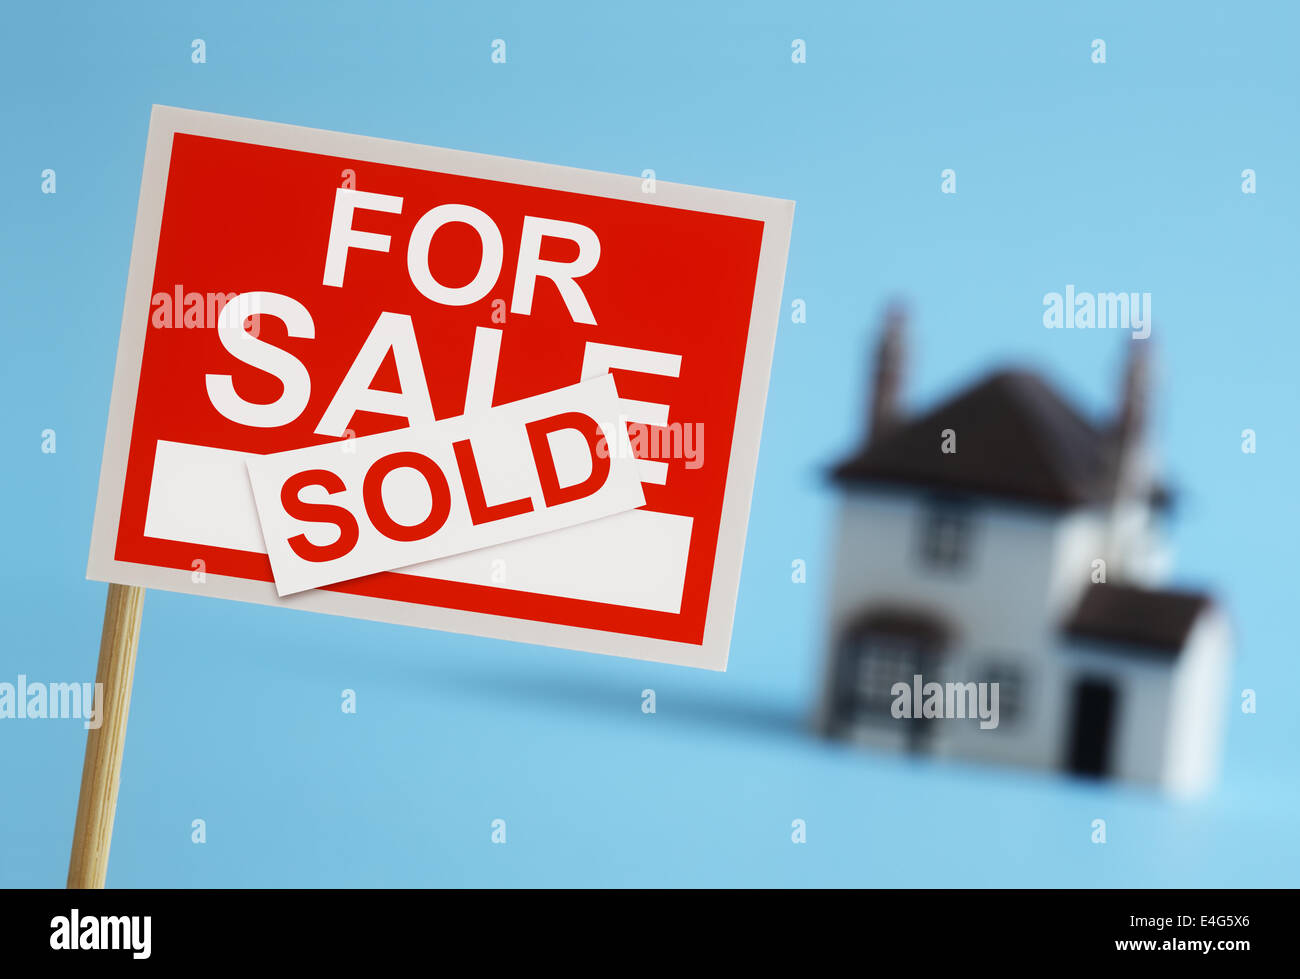 Real estate agent for sale sign - Stock Image